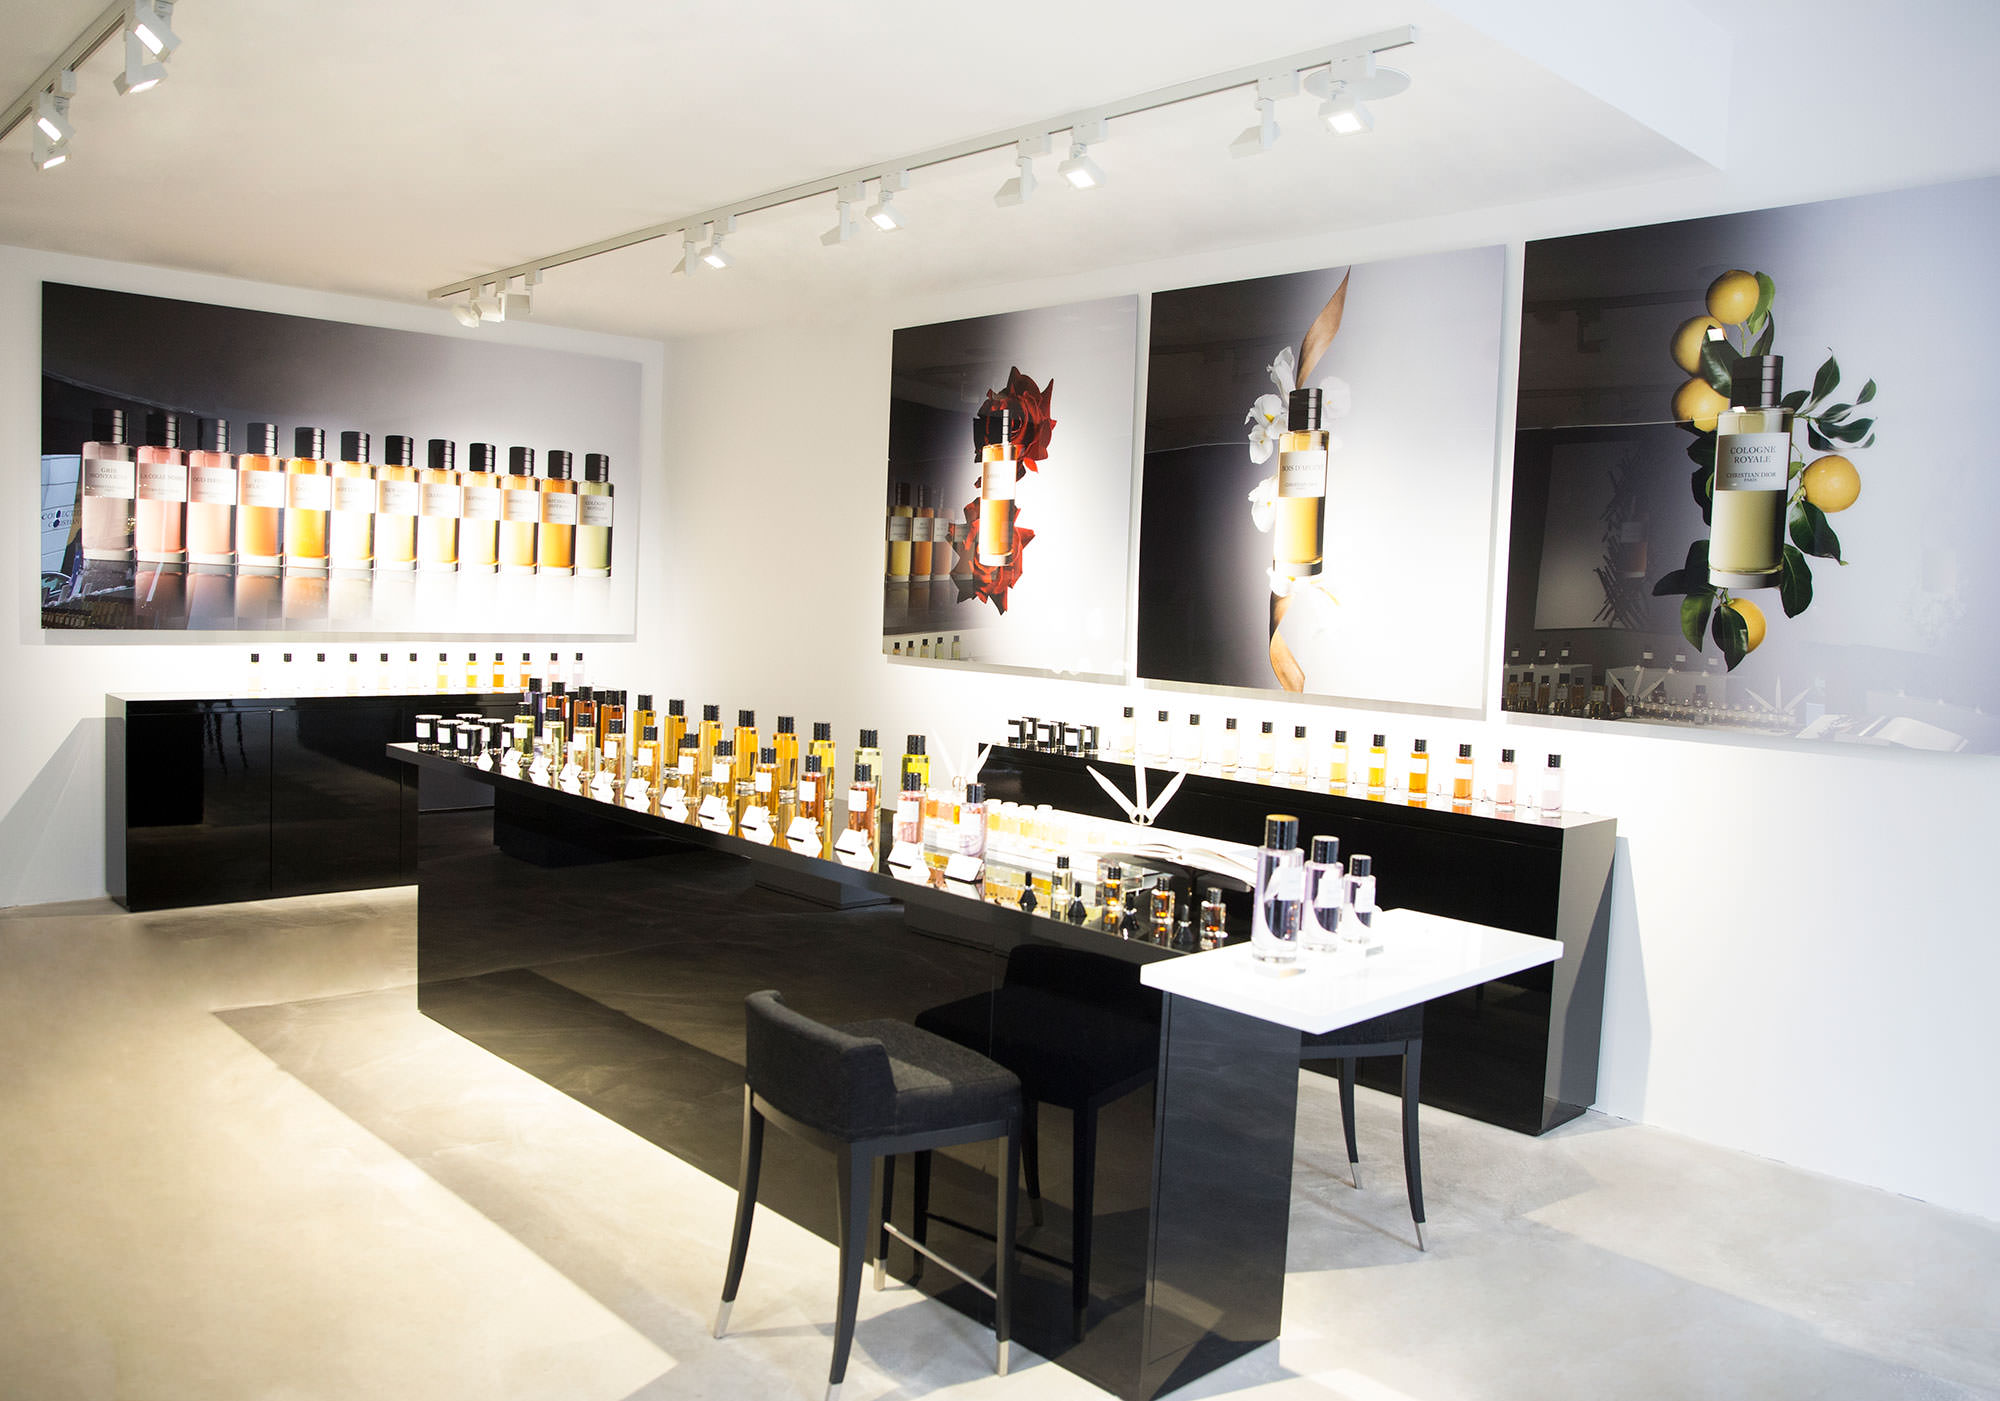 The ephemeral setting for Dior perfumes